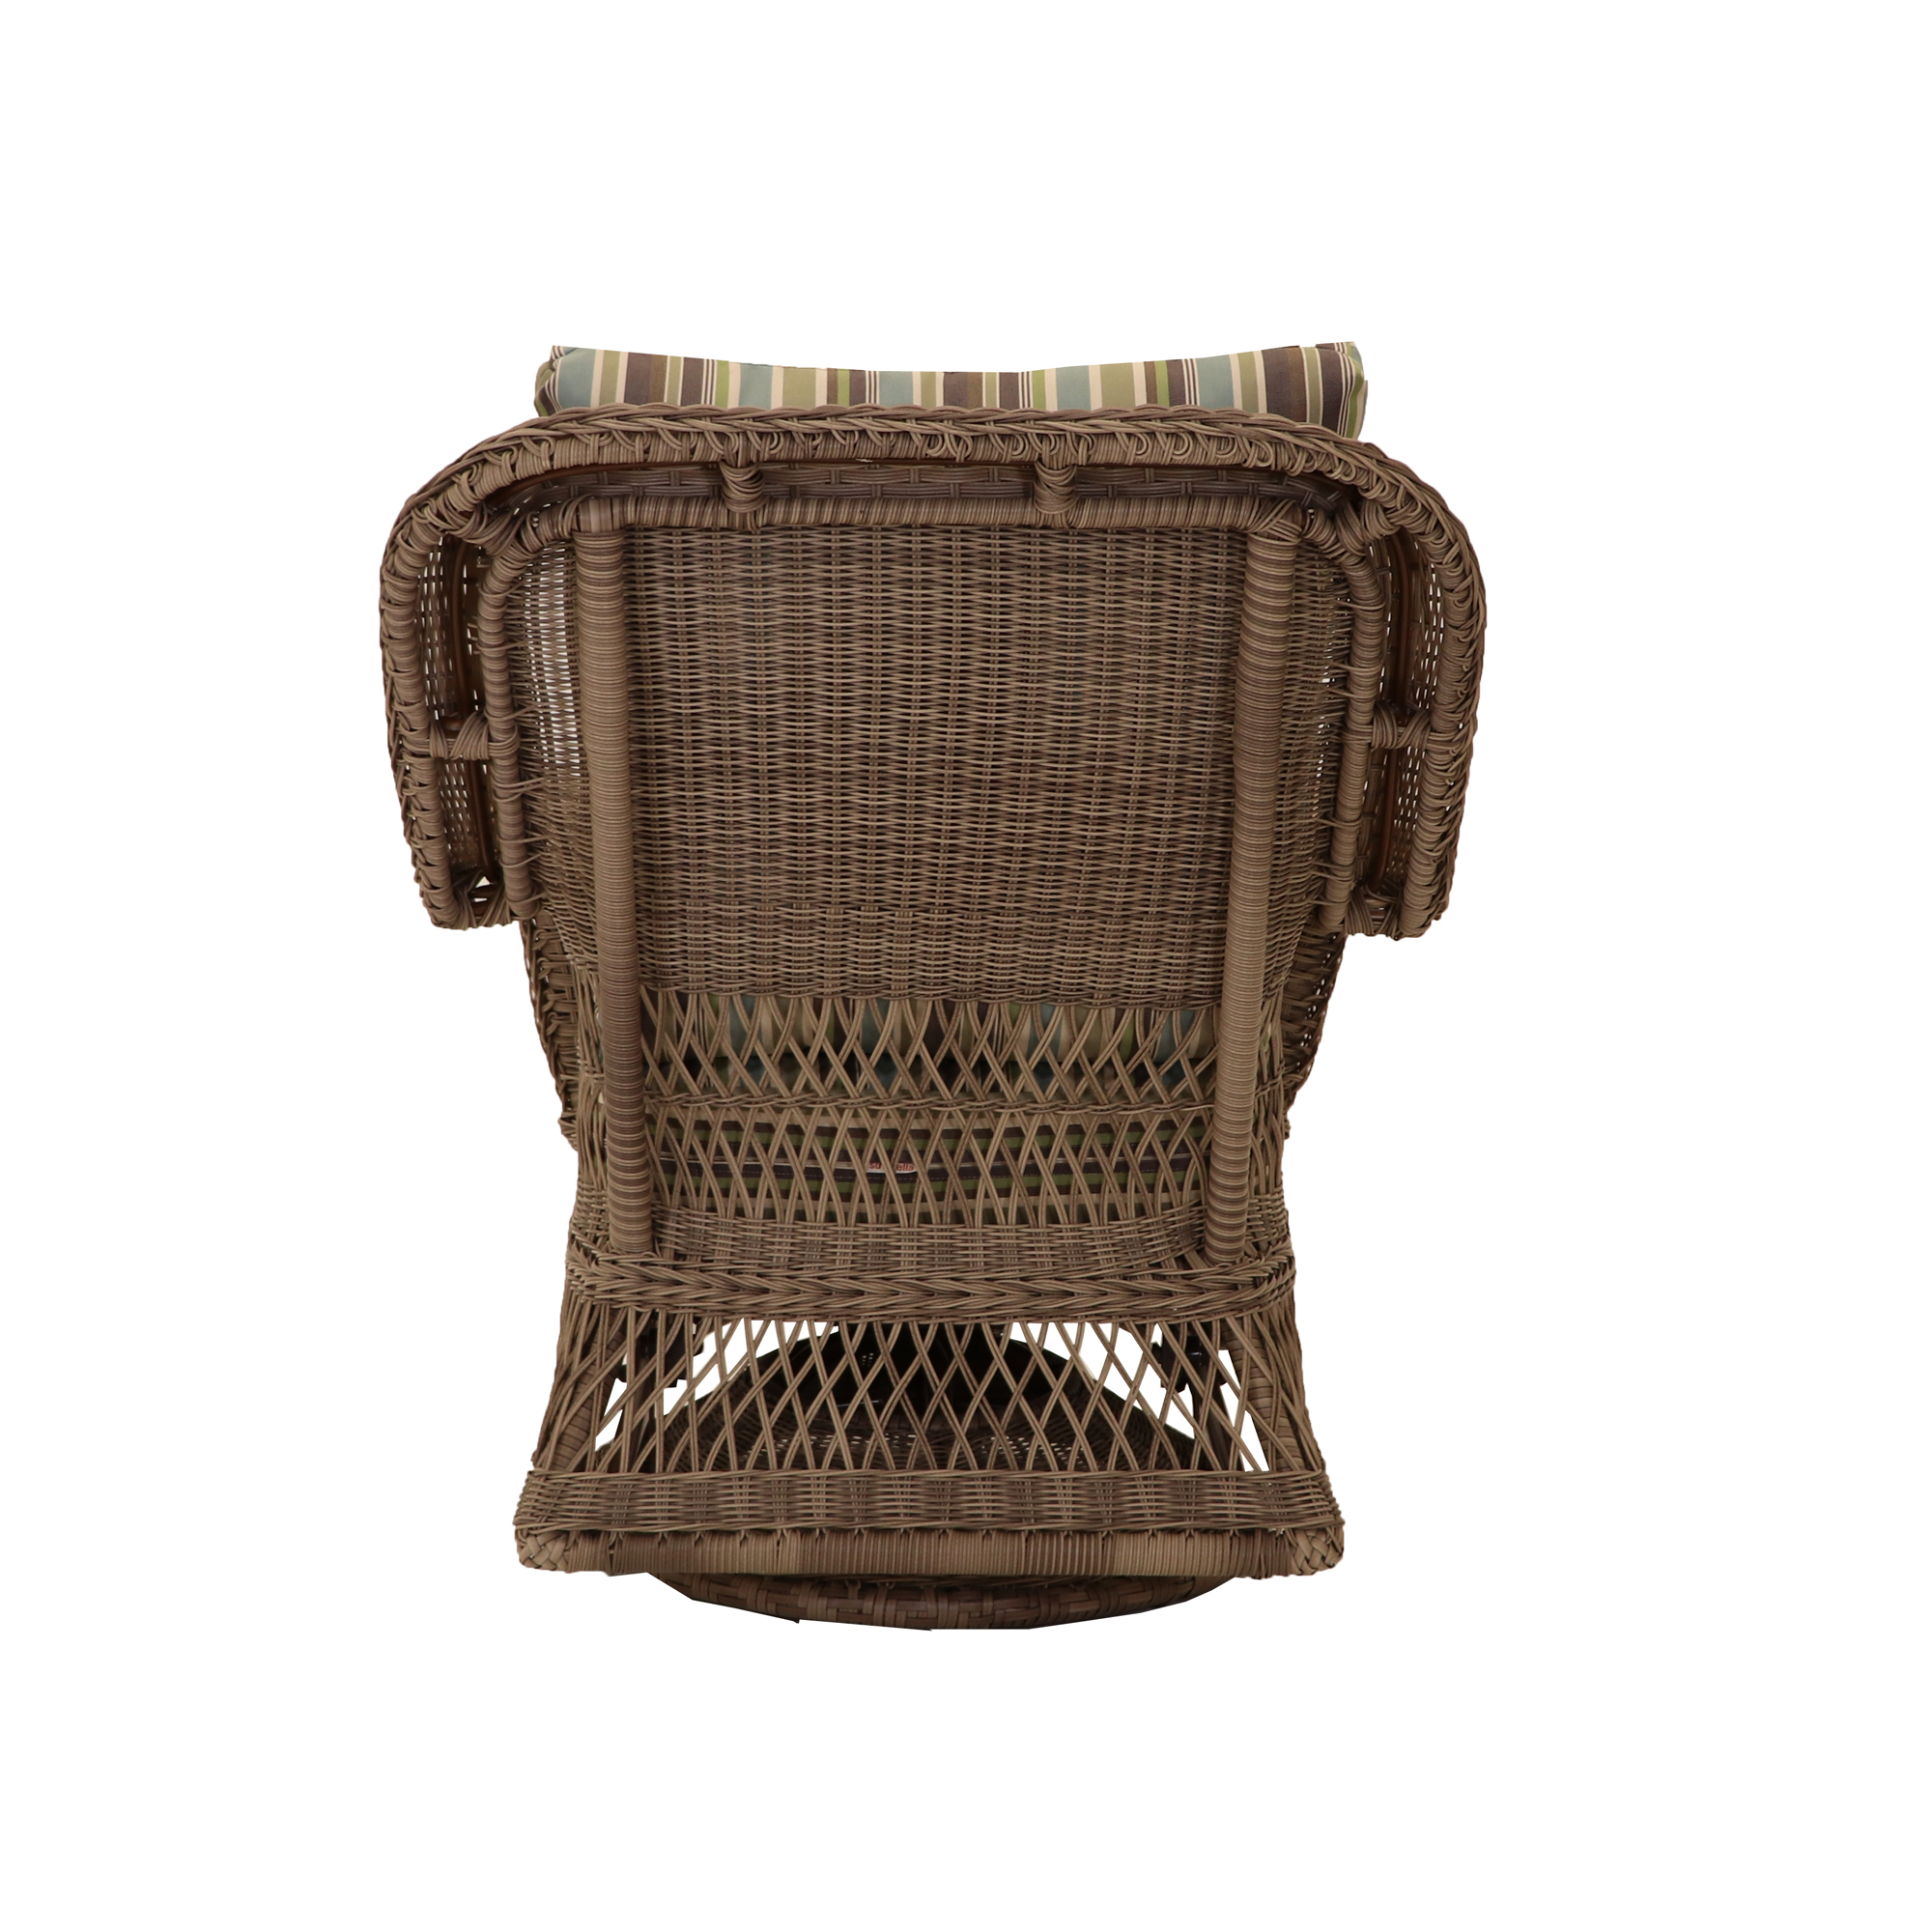 swivel chair regal small chairs for kids rocker patio furniture at sun country